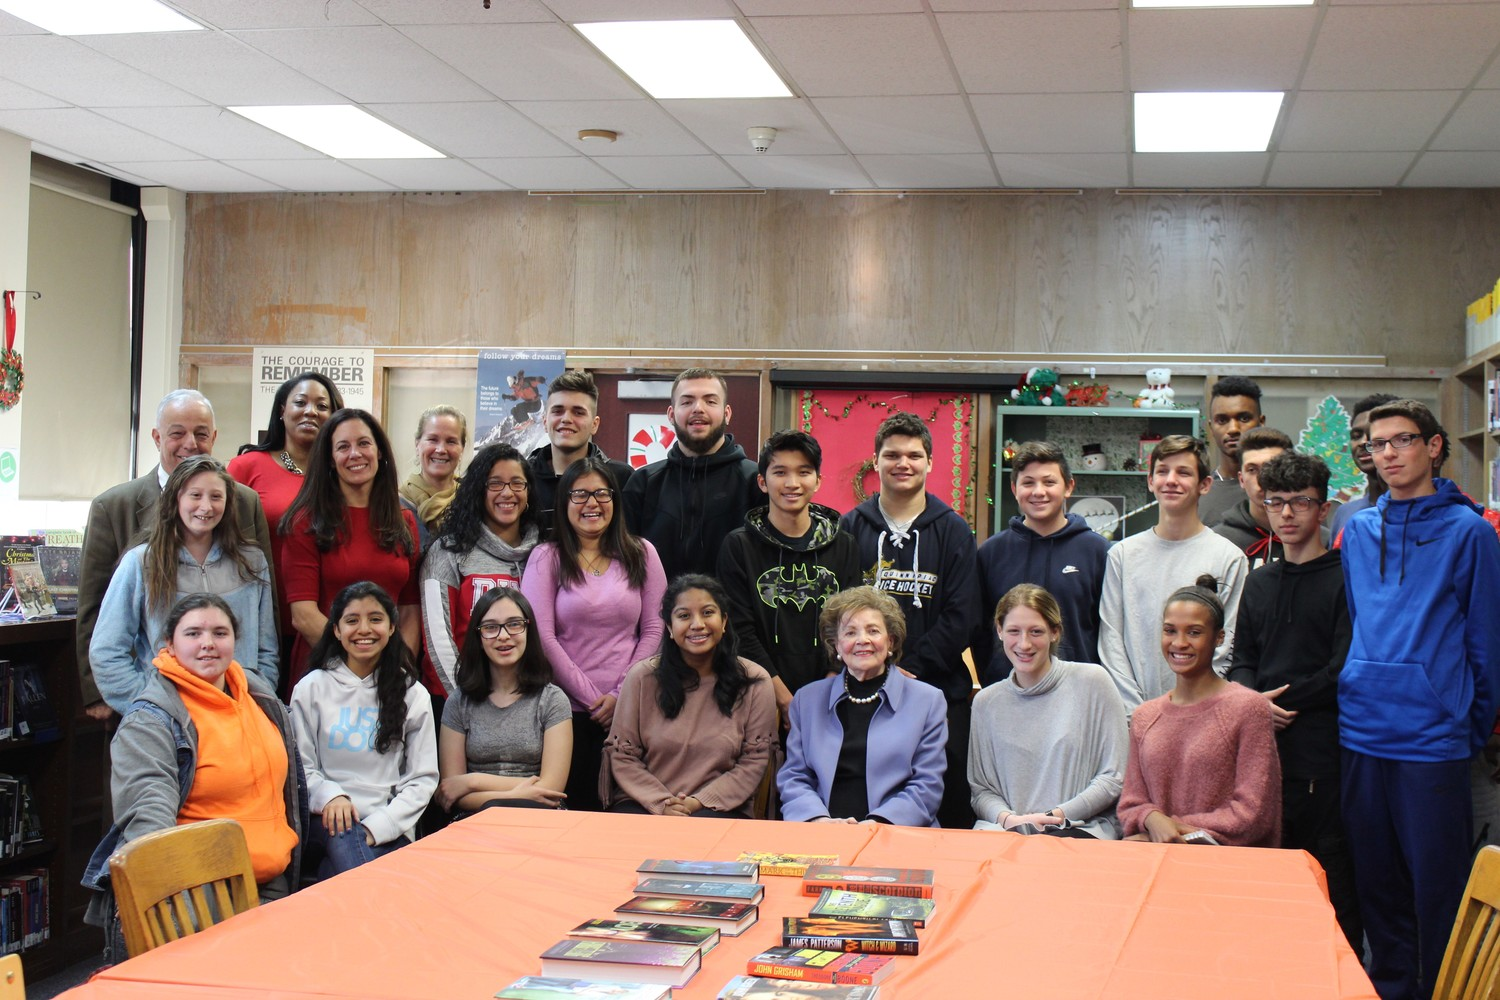 Matilda Cuomo, front, third from right, visited East Rockaway Junior-Senior High School on Dec. 13 to speak with participants in the school's new mentor program.